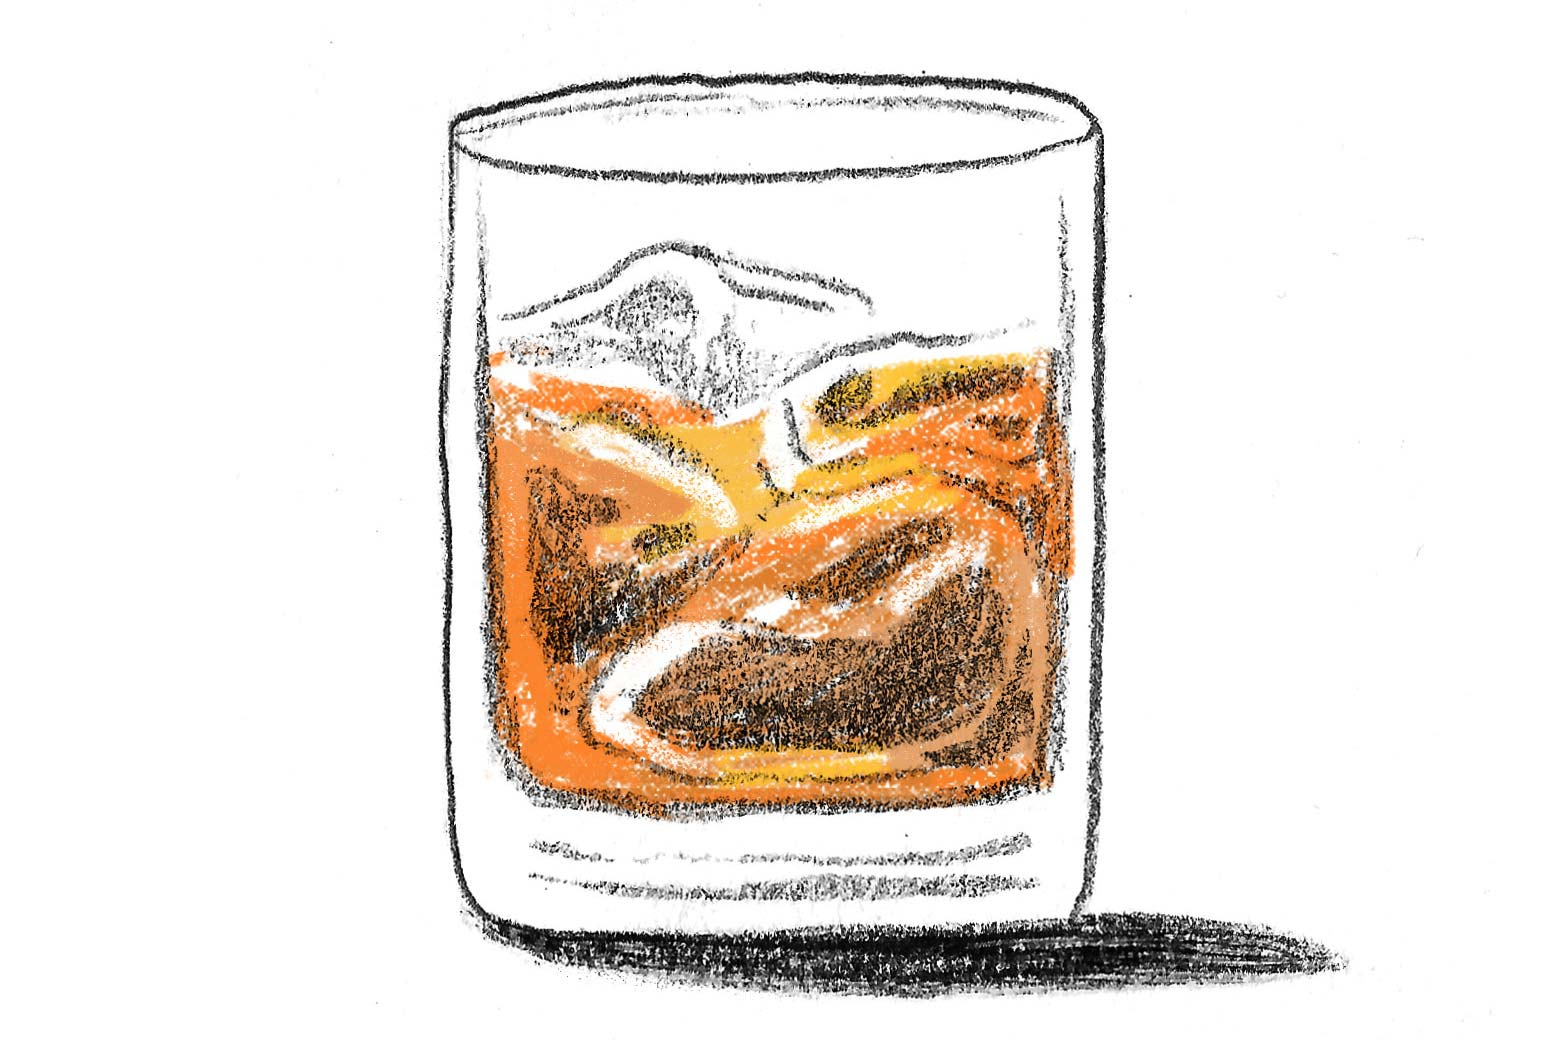 A glass of whiskey on the rocks.